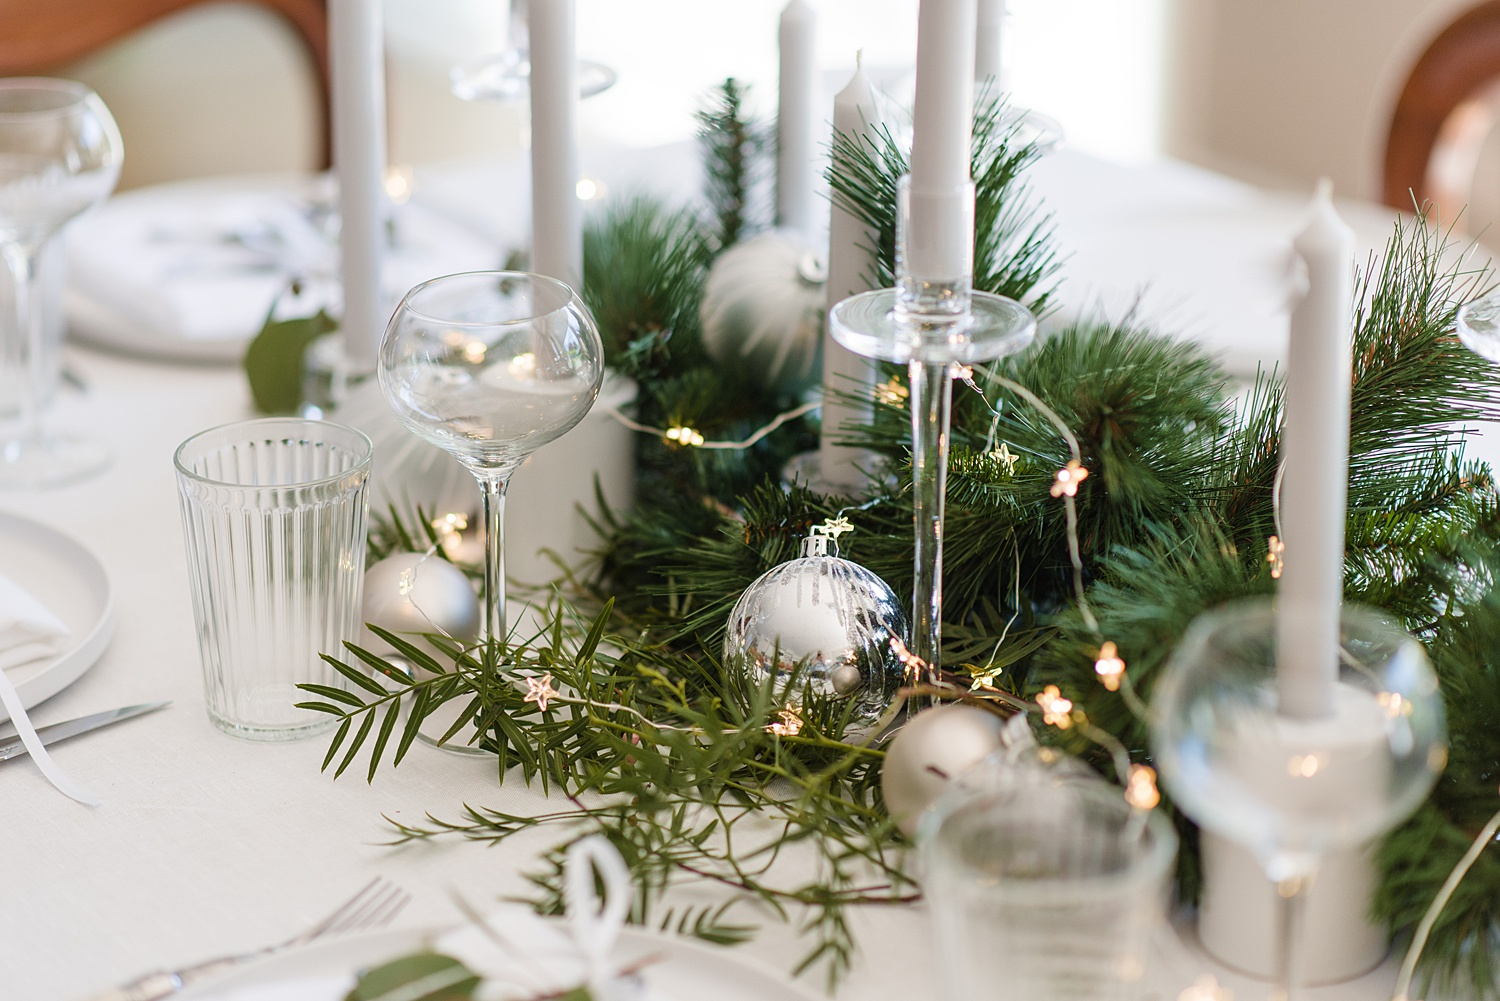 australian-christmas-table-blog-purely-christmas-1